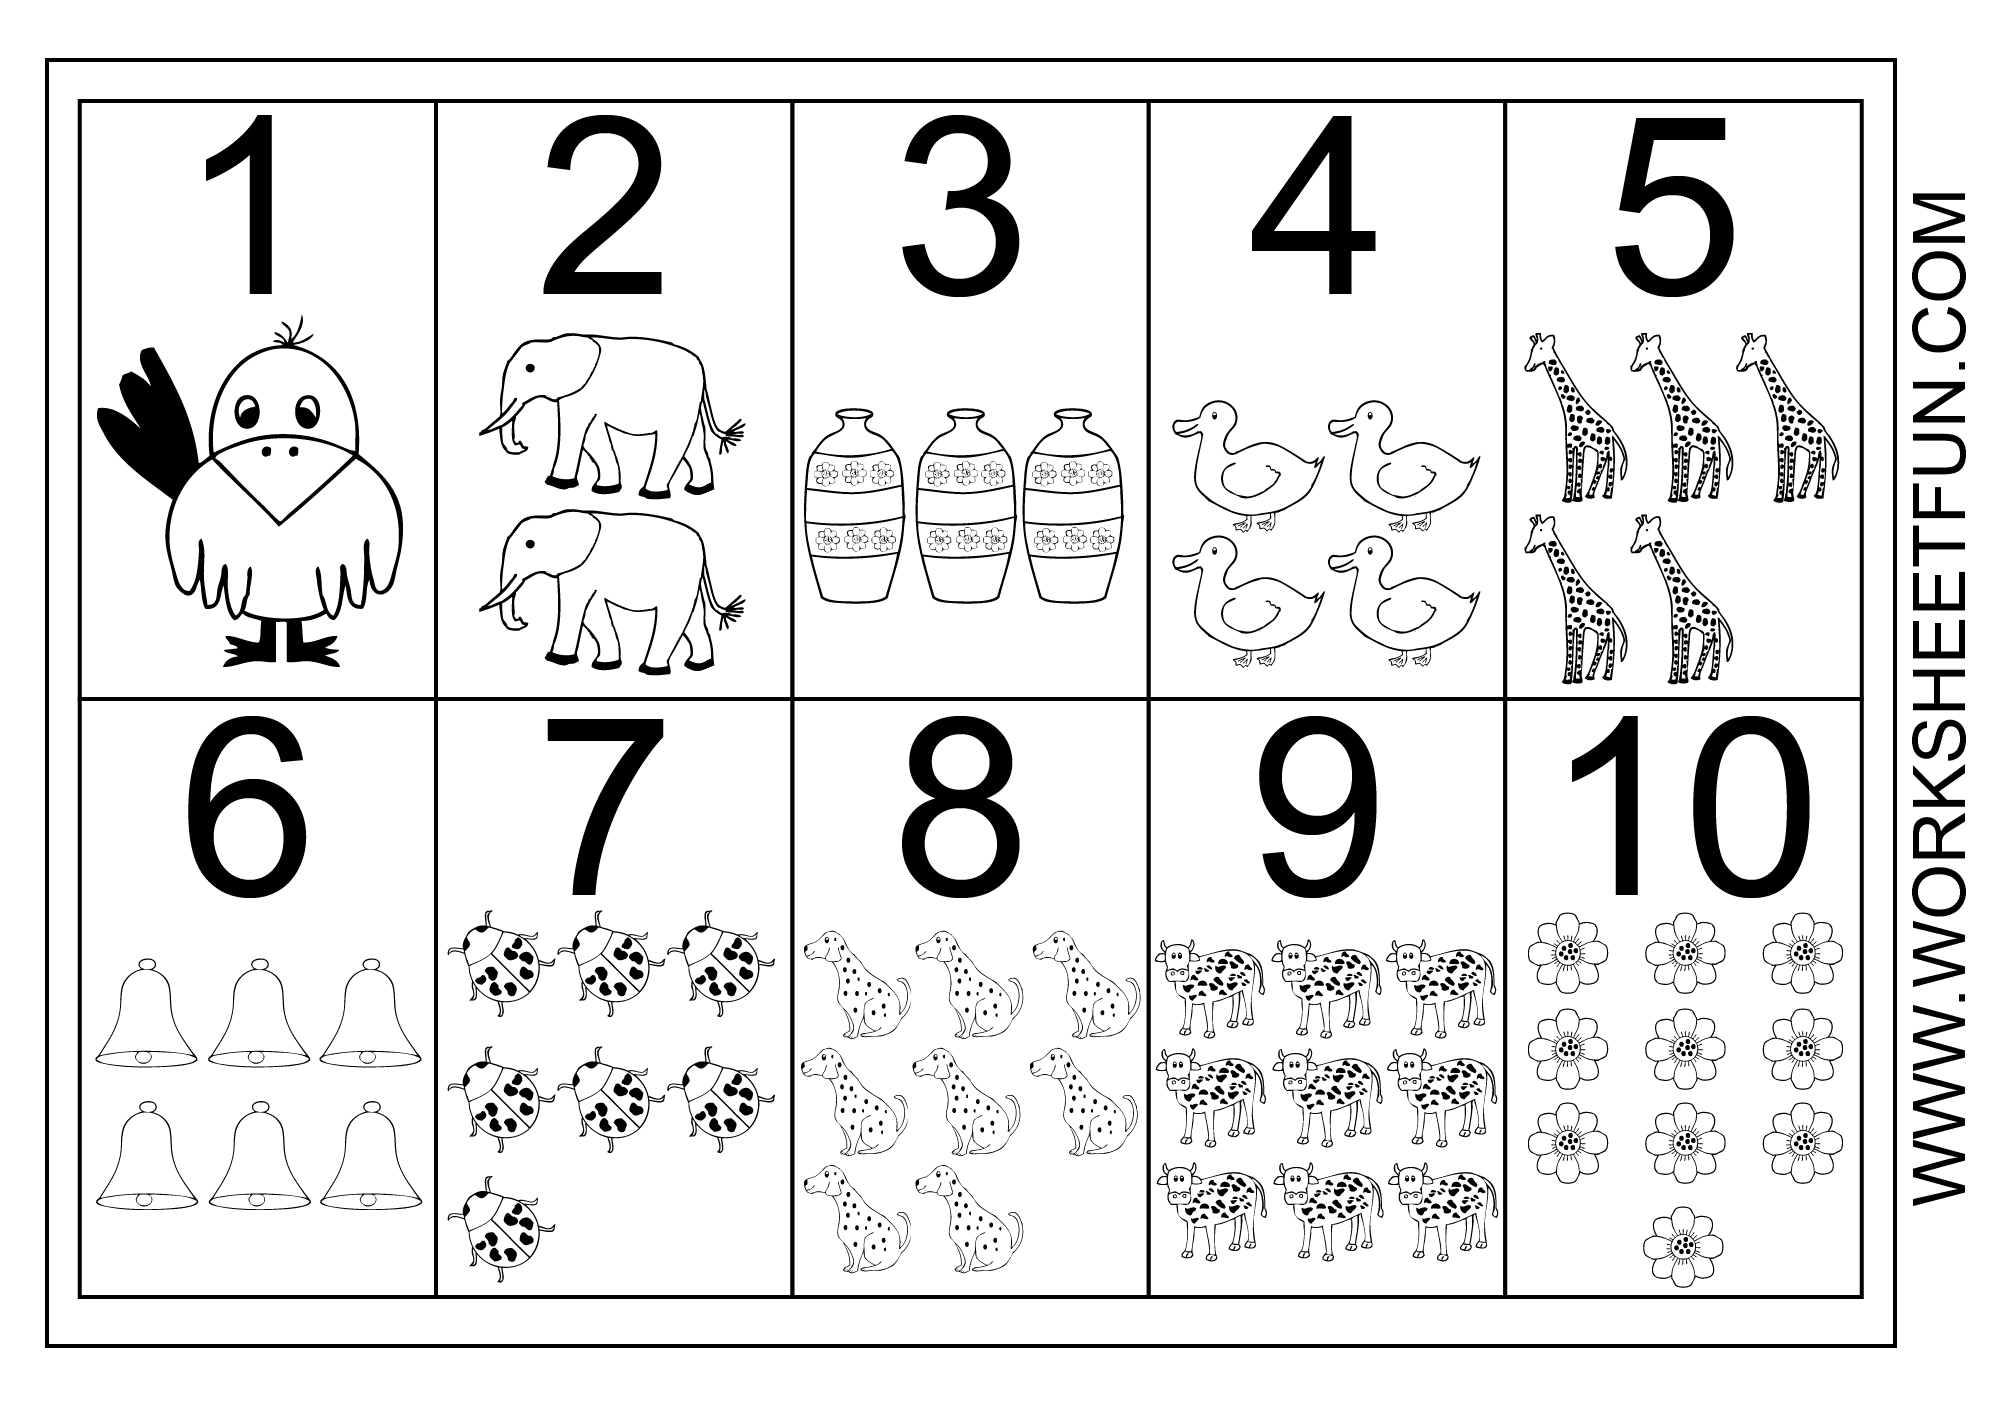 8 Images of Number Chart Printable For Preschool